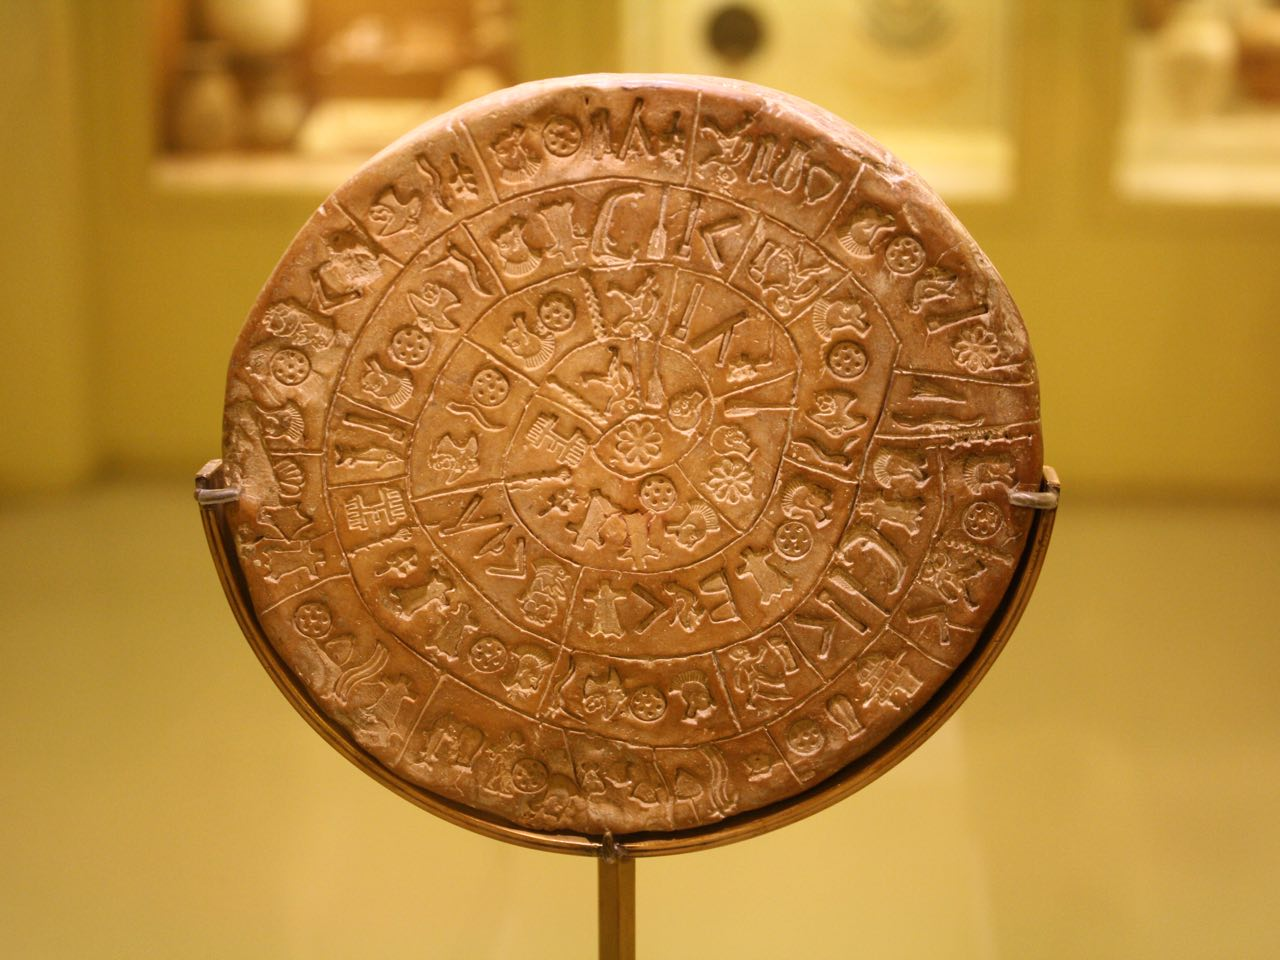 phaistos disc, faistos disc, minoan civilisation